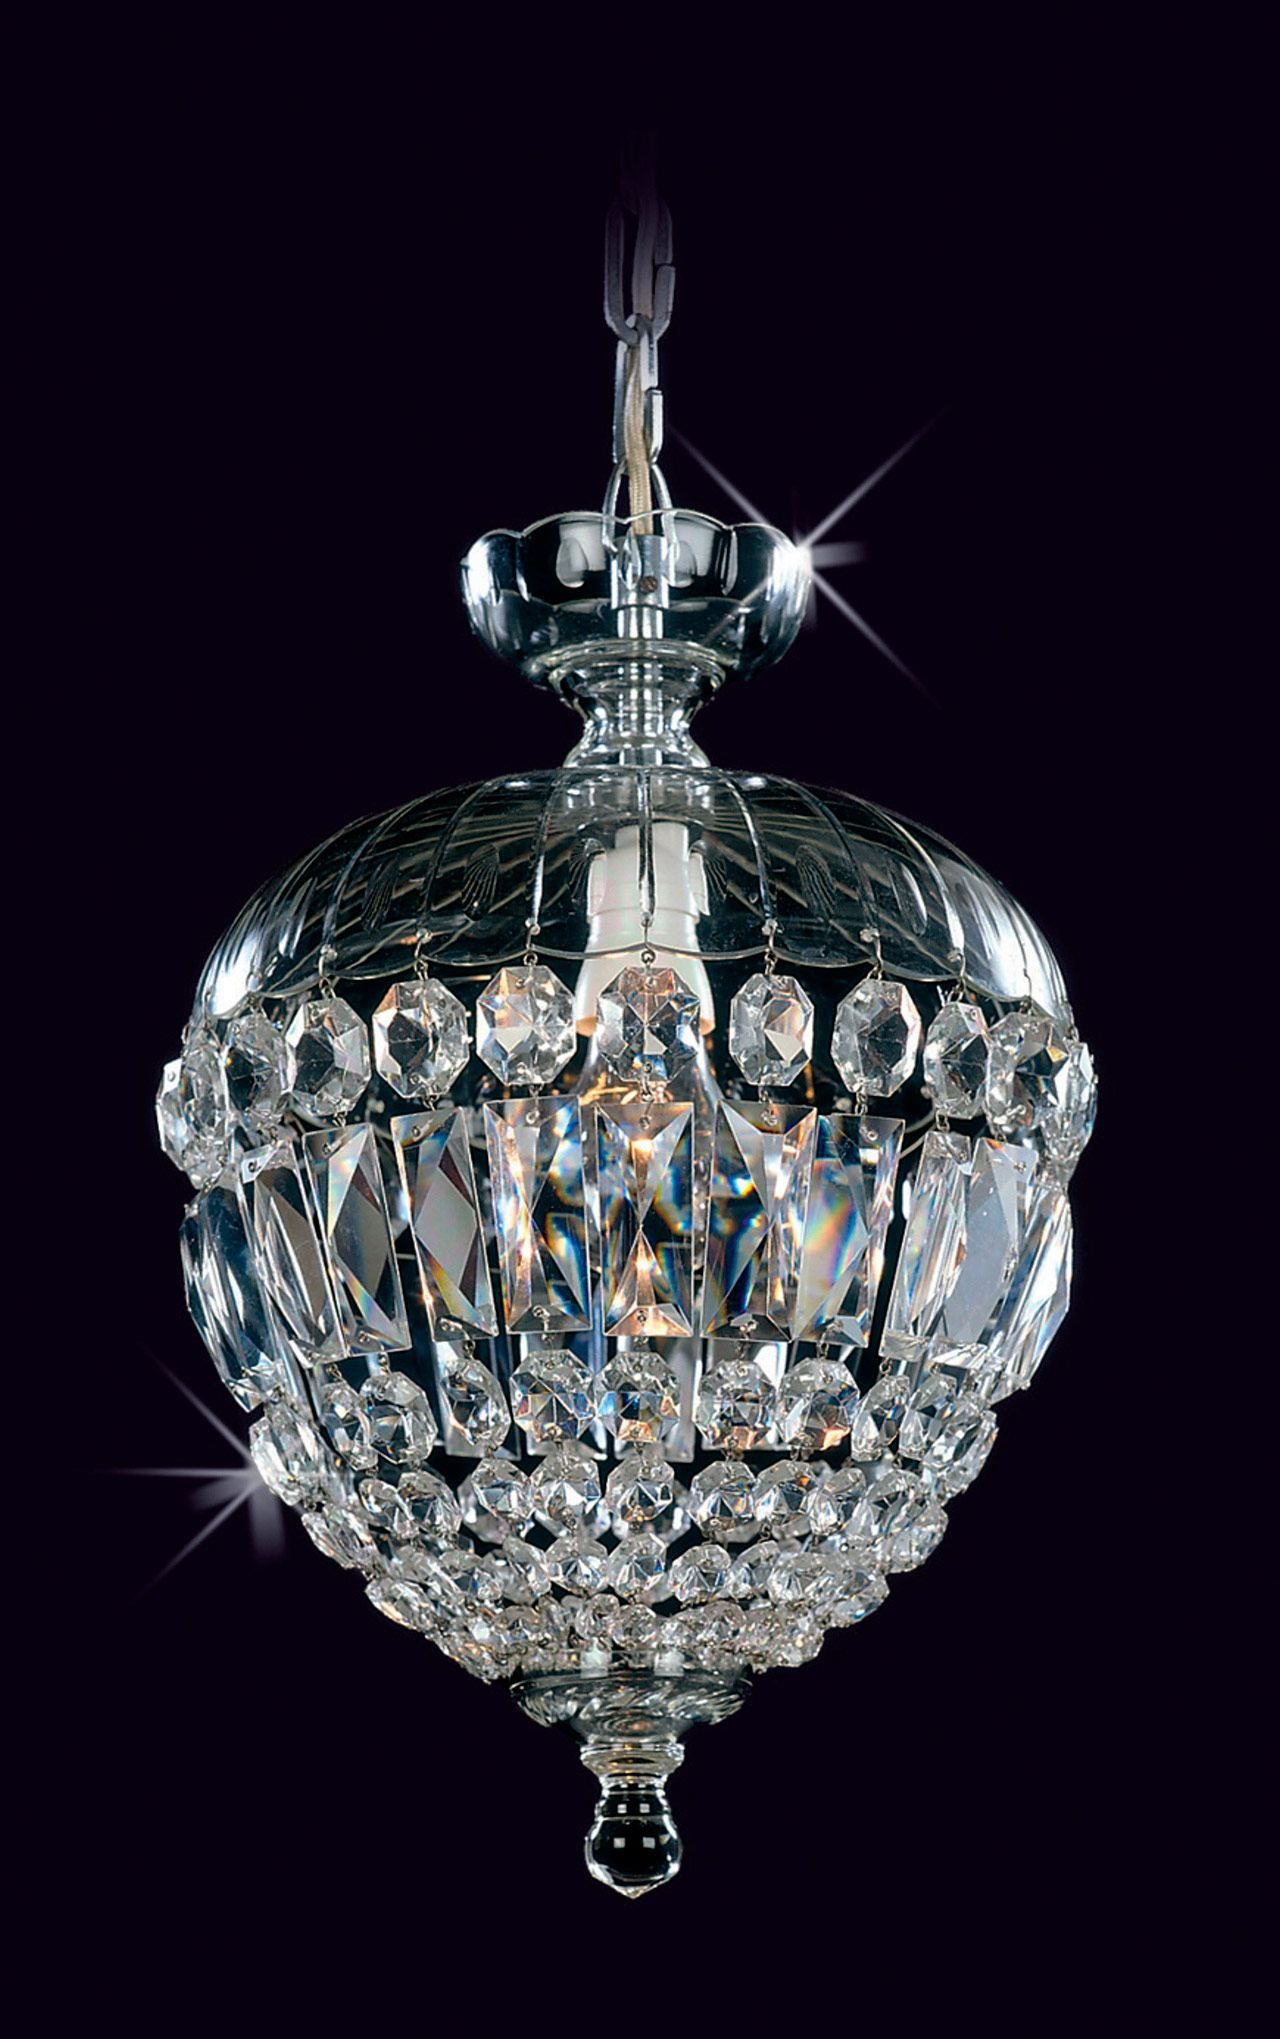 3029 chandelier preciosa lighting work interior design 3029 chandelier preciosa lighting aloadofball Gallery